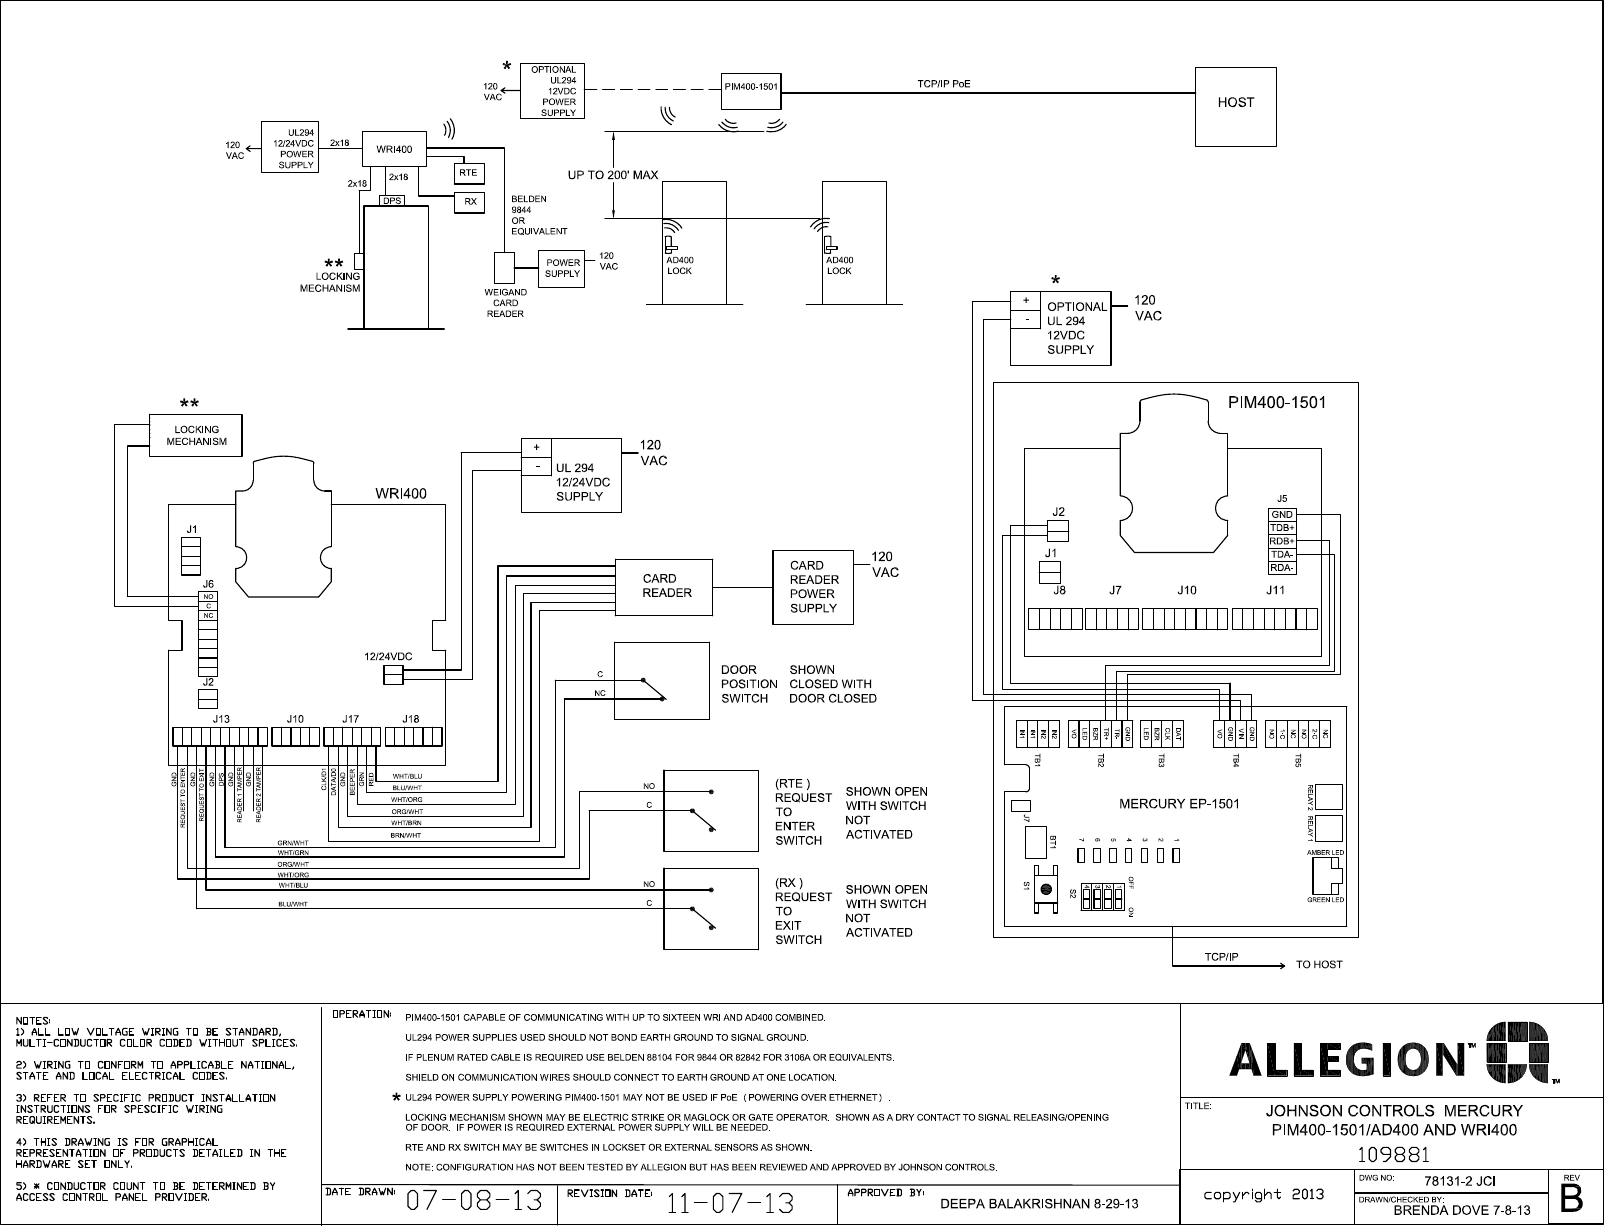 schlage electronics c ad ad400 wiring diagram johnson controls wri Johnson Temp Controller schlage electronics c ad ad400 wiring diagram johnson controls wri 400 pim400 1501 rs485 109881